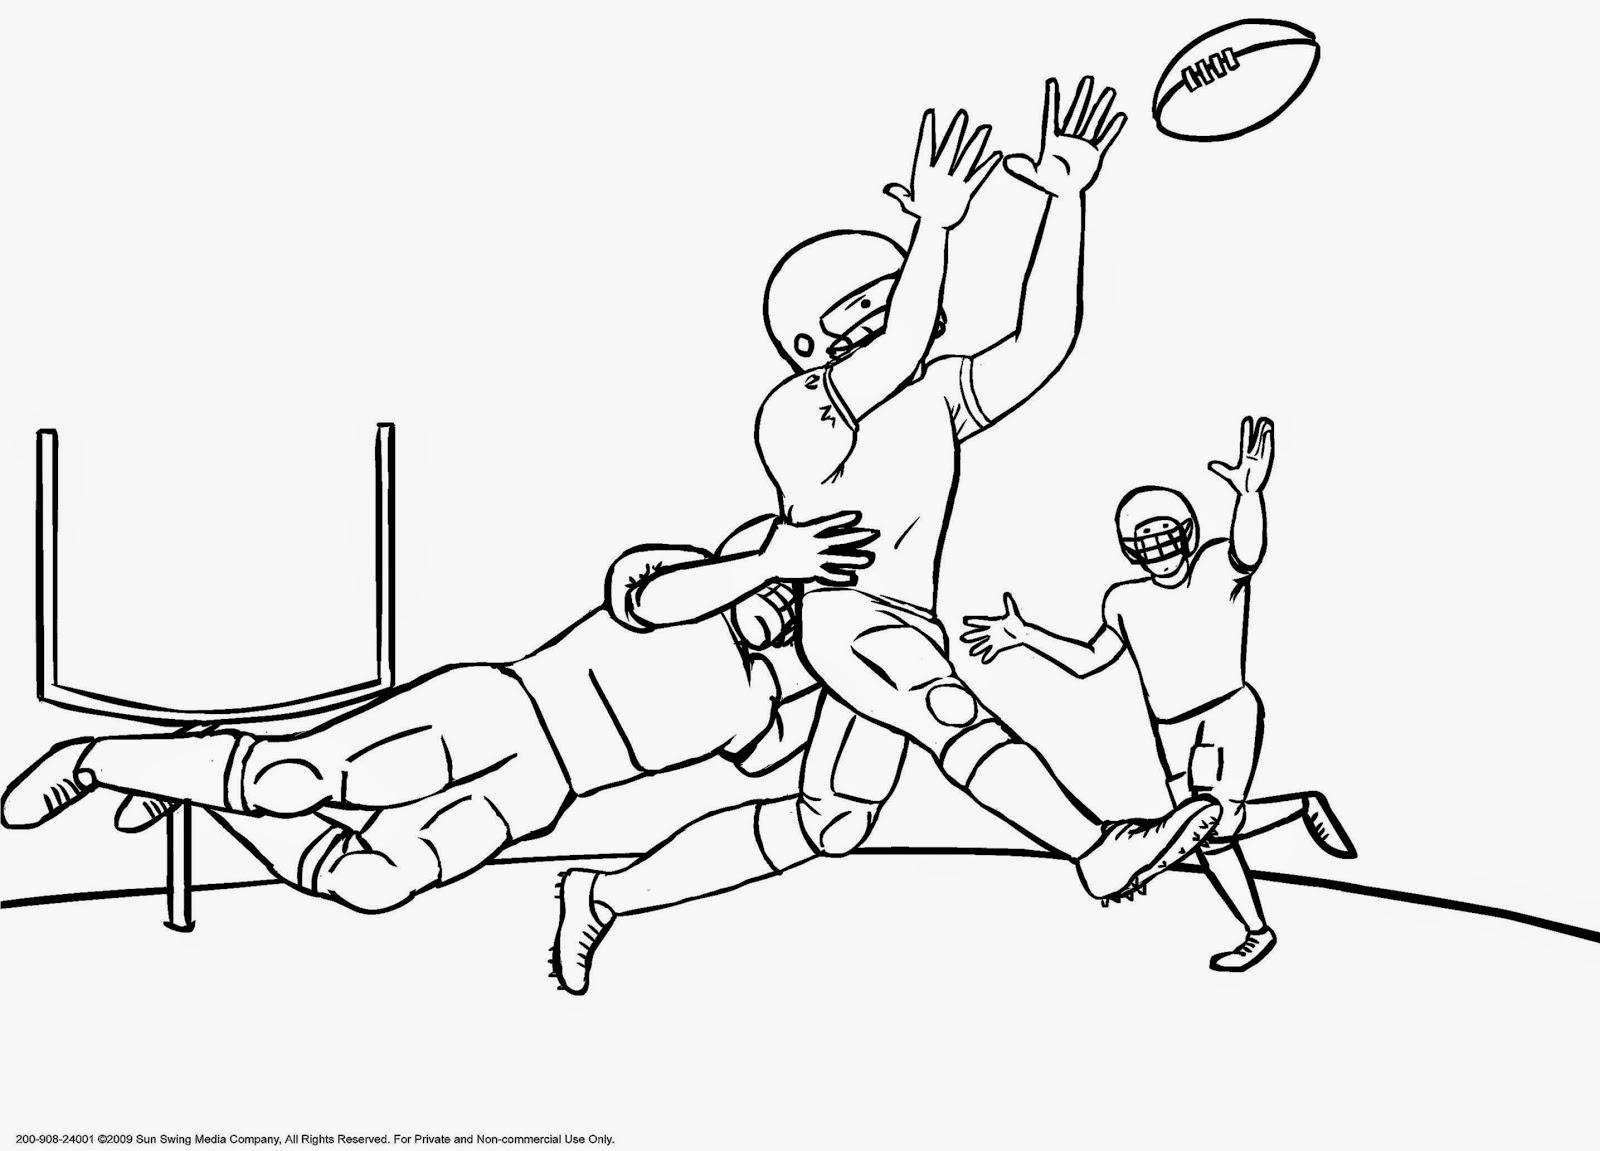 Adult Top Football Coloring Pages Free Images best football coloring sheets free sheet uniform printabl pages gallery images